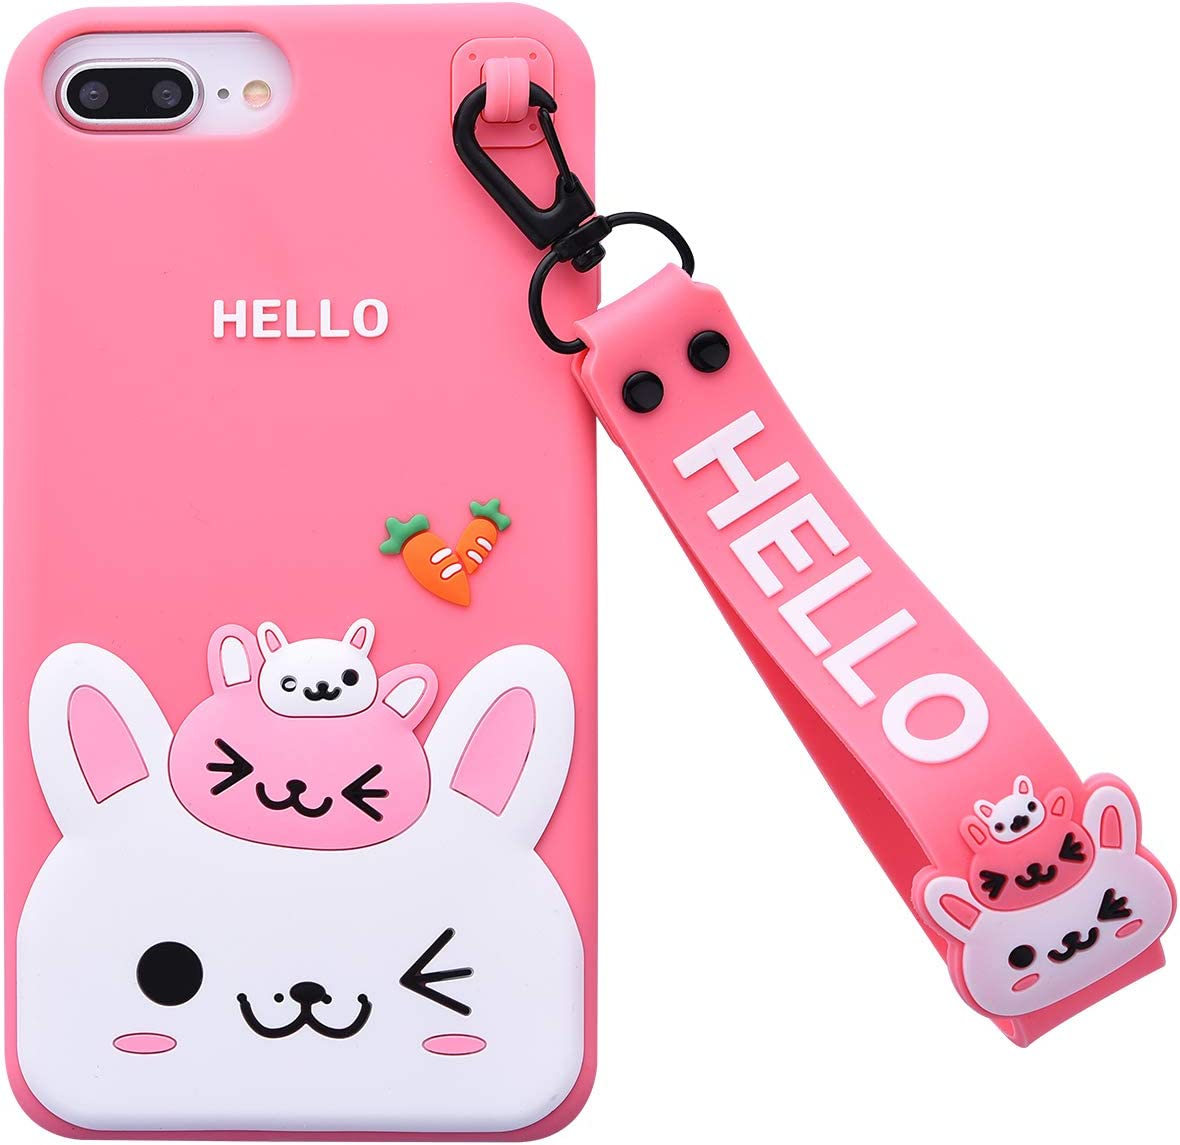 Case for iPhone 7Plus/iPhone 8Plus Case,iFunny Cute 3D Cartoon Kawaii Radish Rabbit Shockproof Soft Silicone Rubber Case with Wrist Strap for iPhone 6 6S Plus 7 8Plus (5.5inch) (Radish Rabbit Pink)